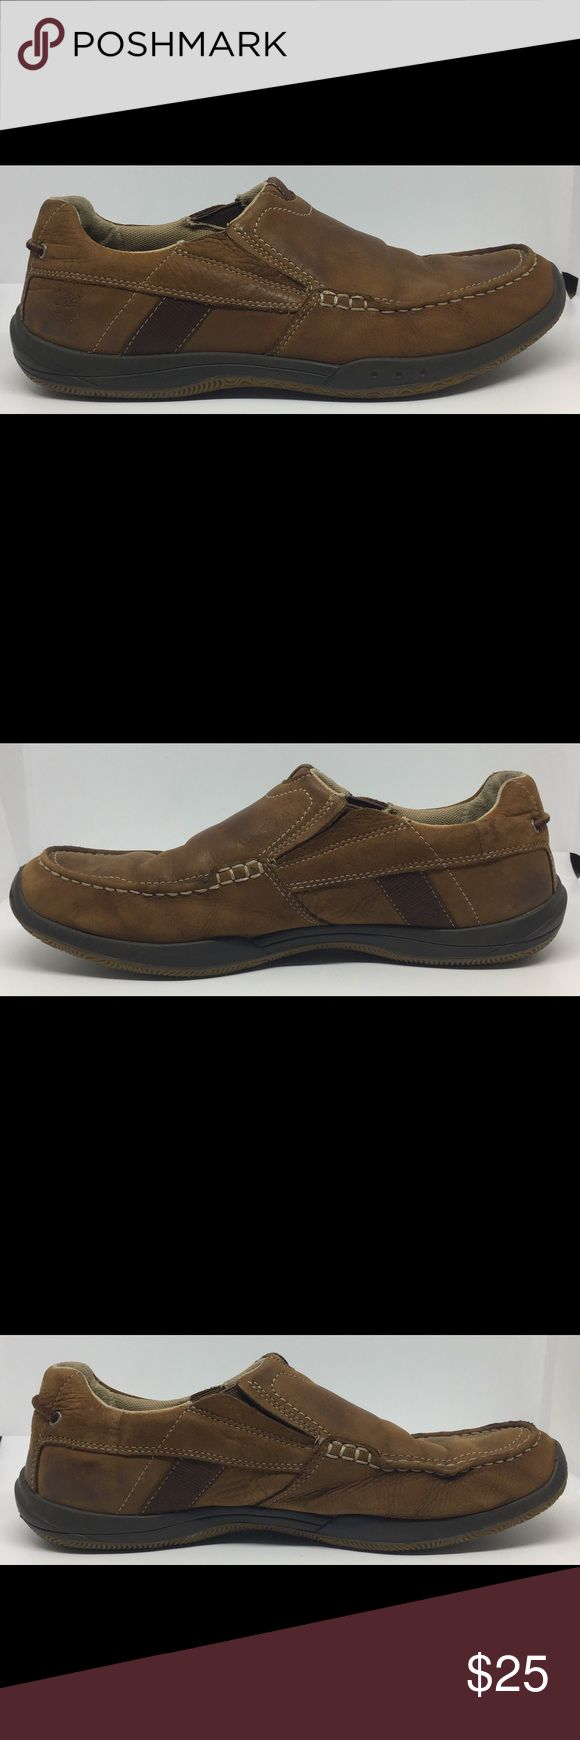 Timberland Earthkeepers Men's Loafer Sz 8.5 Worn a few times. Good Condition. See Pictures. Bin 9 B92 Timberland Shoes Loafers & Slip-Ons